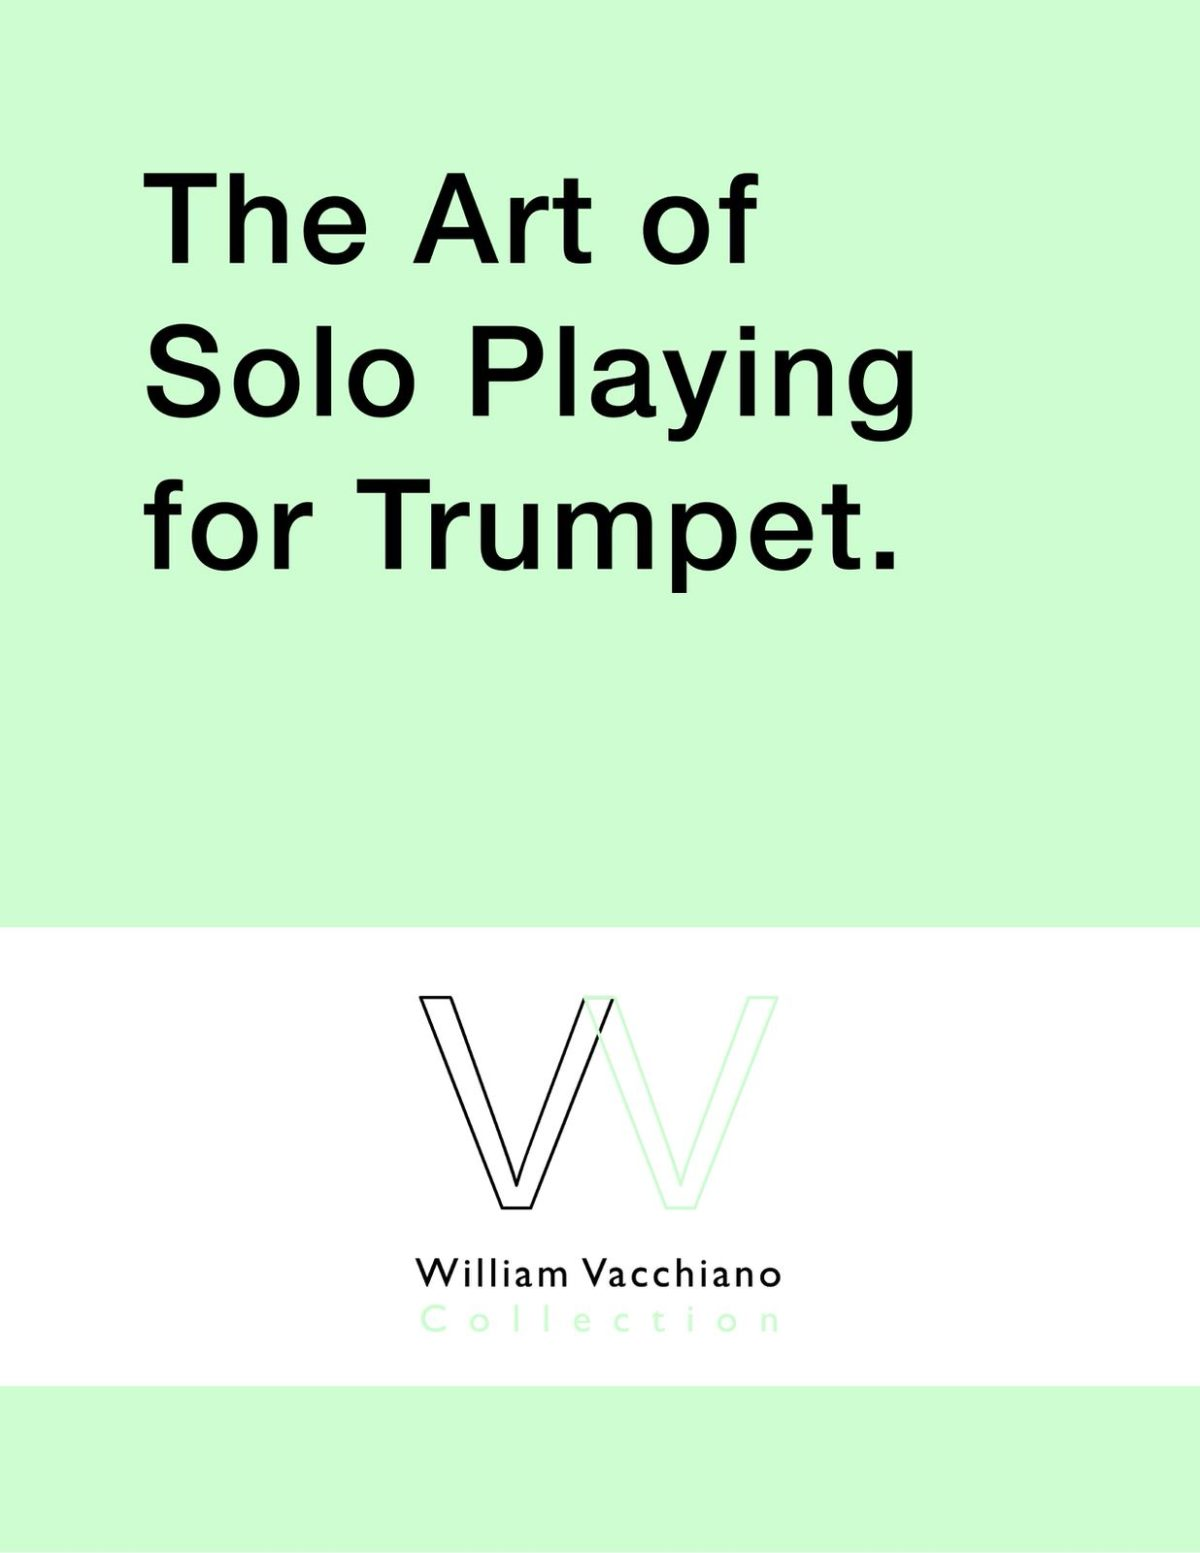 Vacchiano, The Art of Solo Playing for Trumpet-p01